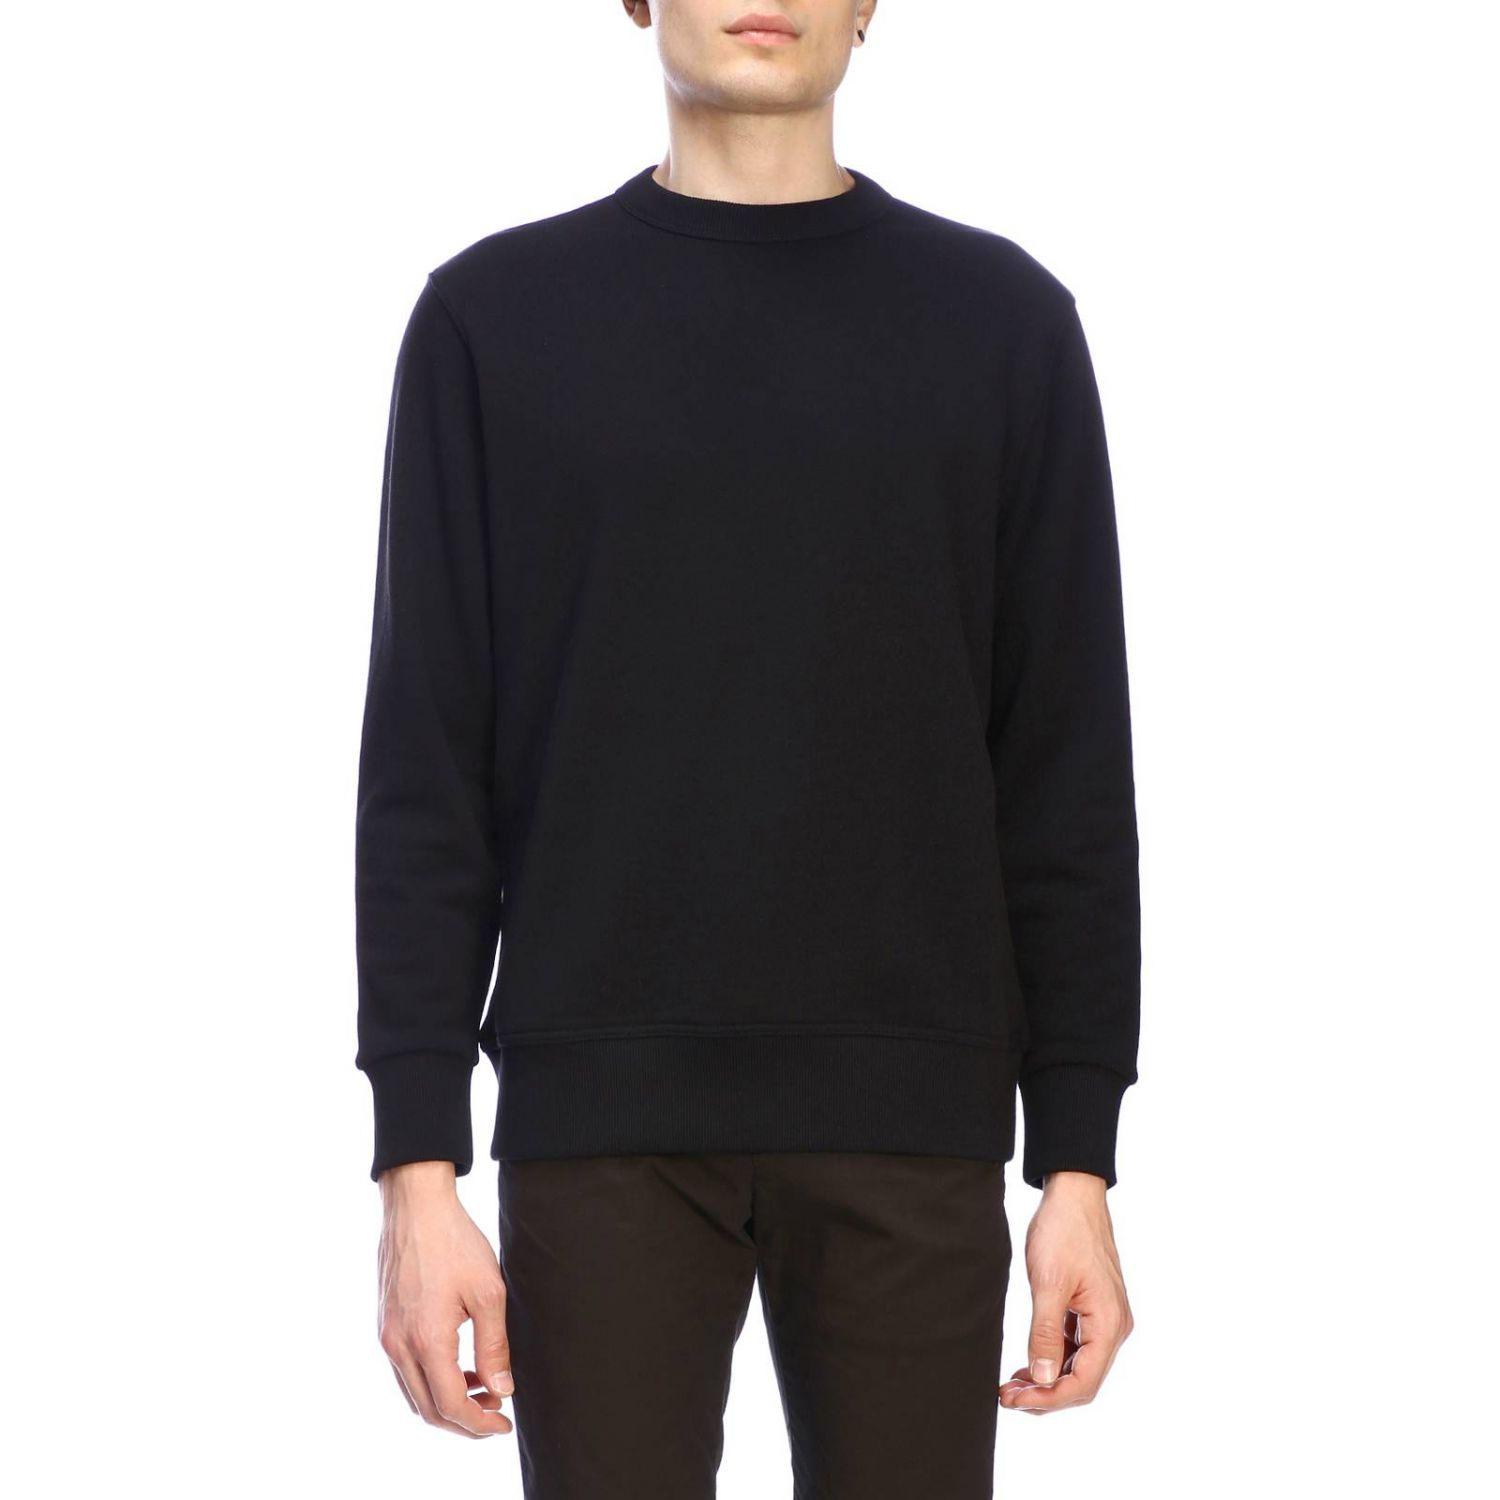 Crewneck sweatshirt with maxi back Burberry lettering and zip black 1